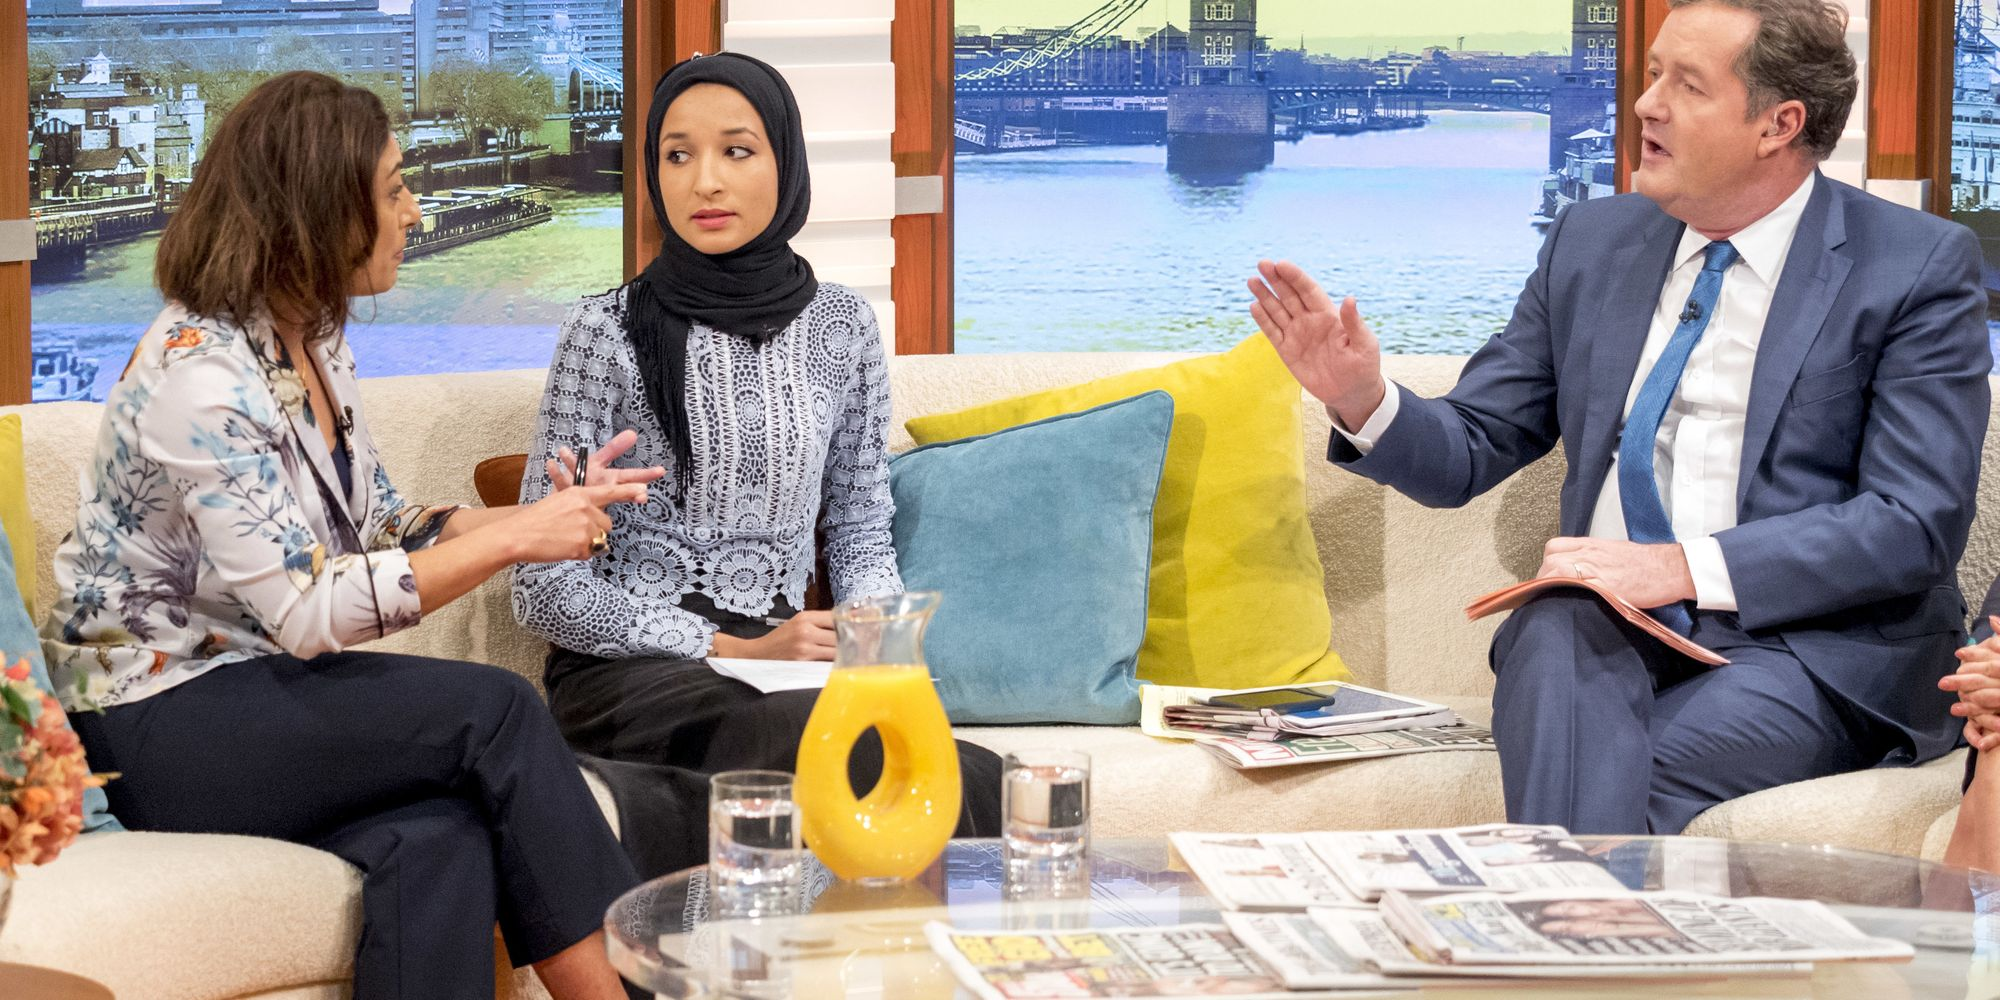 'Good Morning Britain': Loose Women's Saira Khan Clashes With Piers Morgan Over Headscarf Debate ...